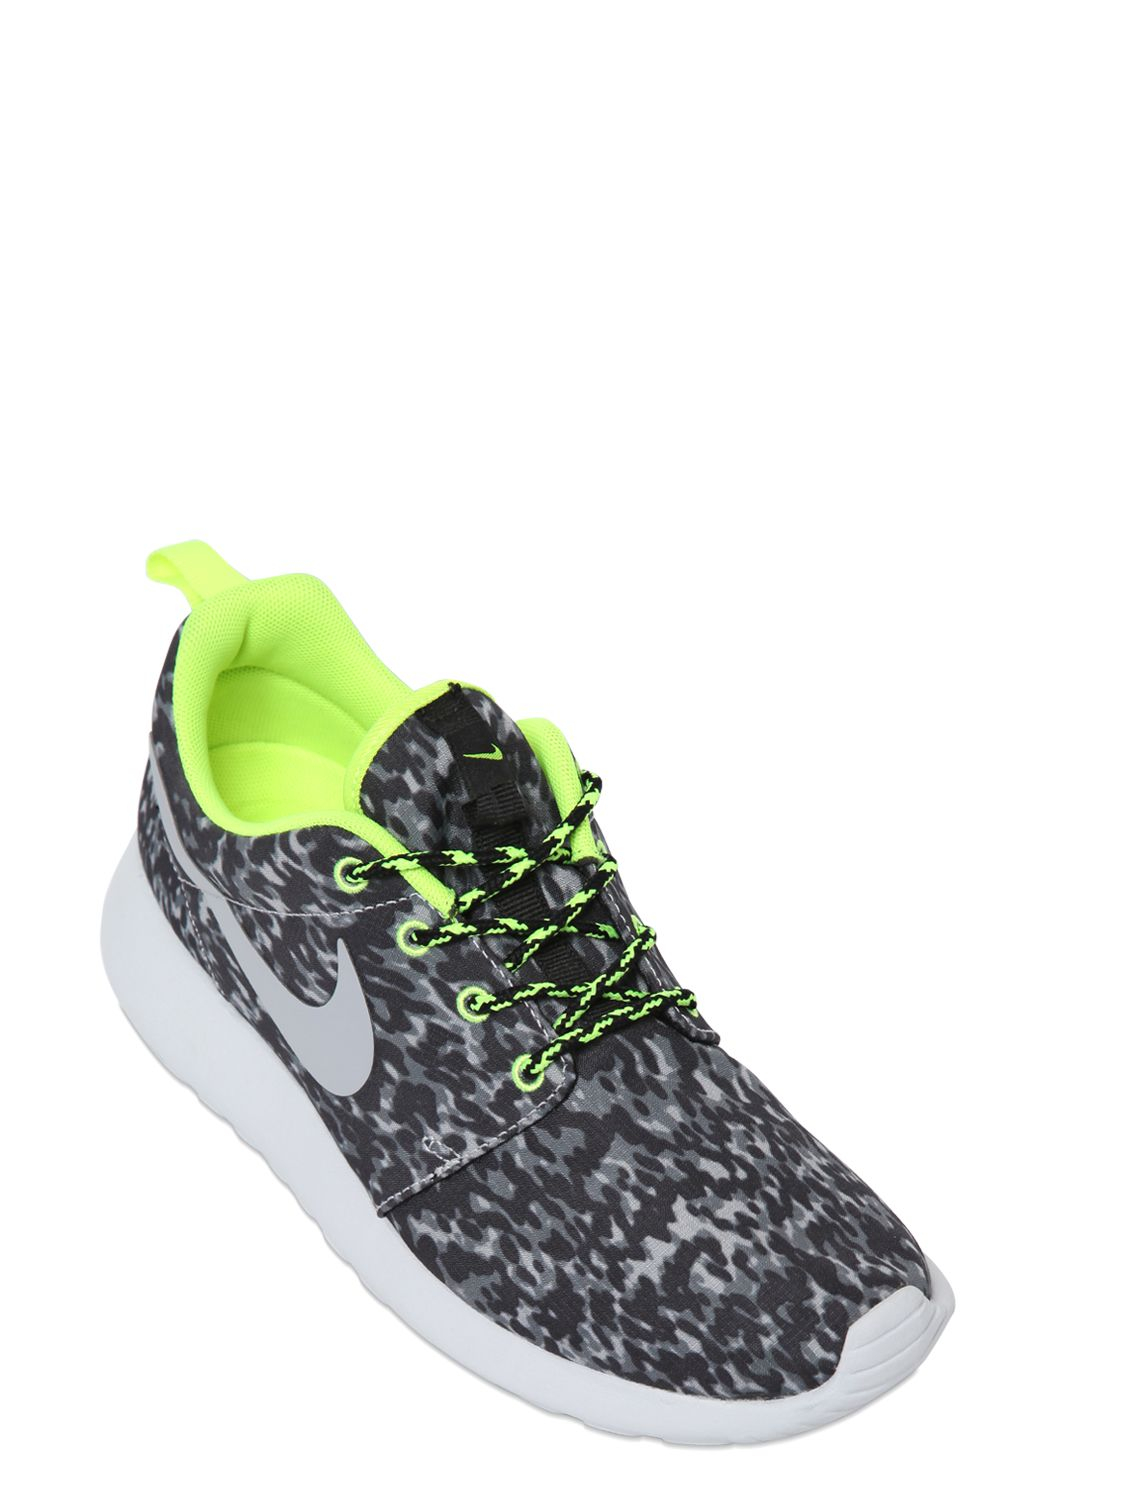 cheap for discount 0d54b 6ee9f Lyst - Nike Roshe Run Leopard Print Running Sneakers in Gray